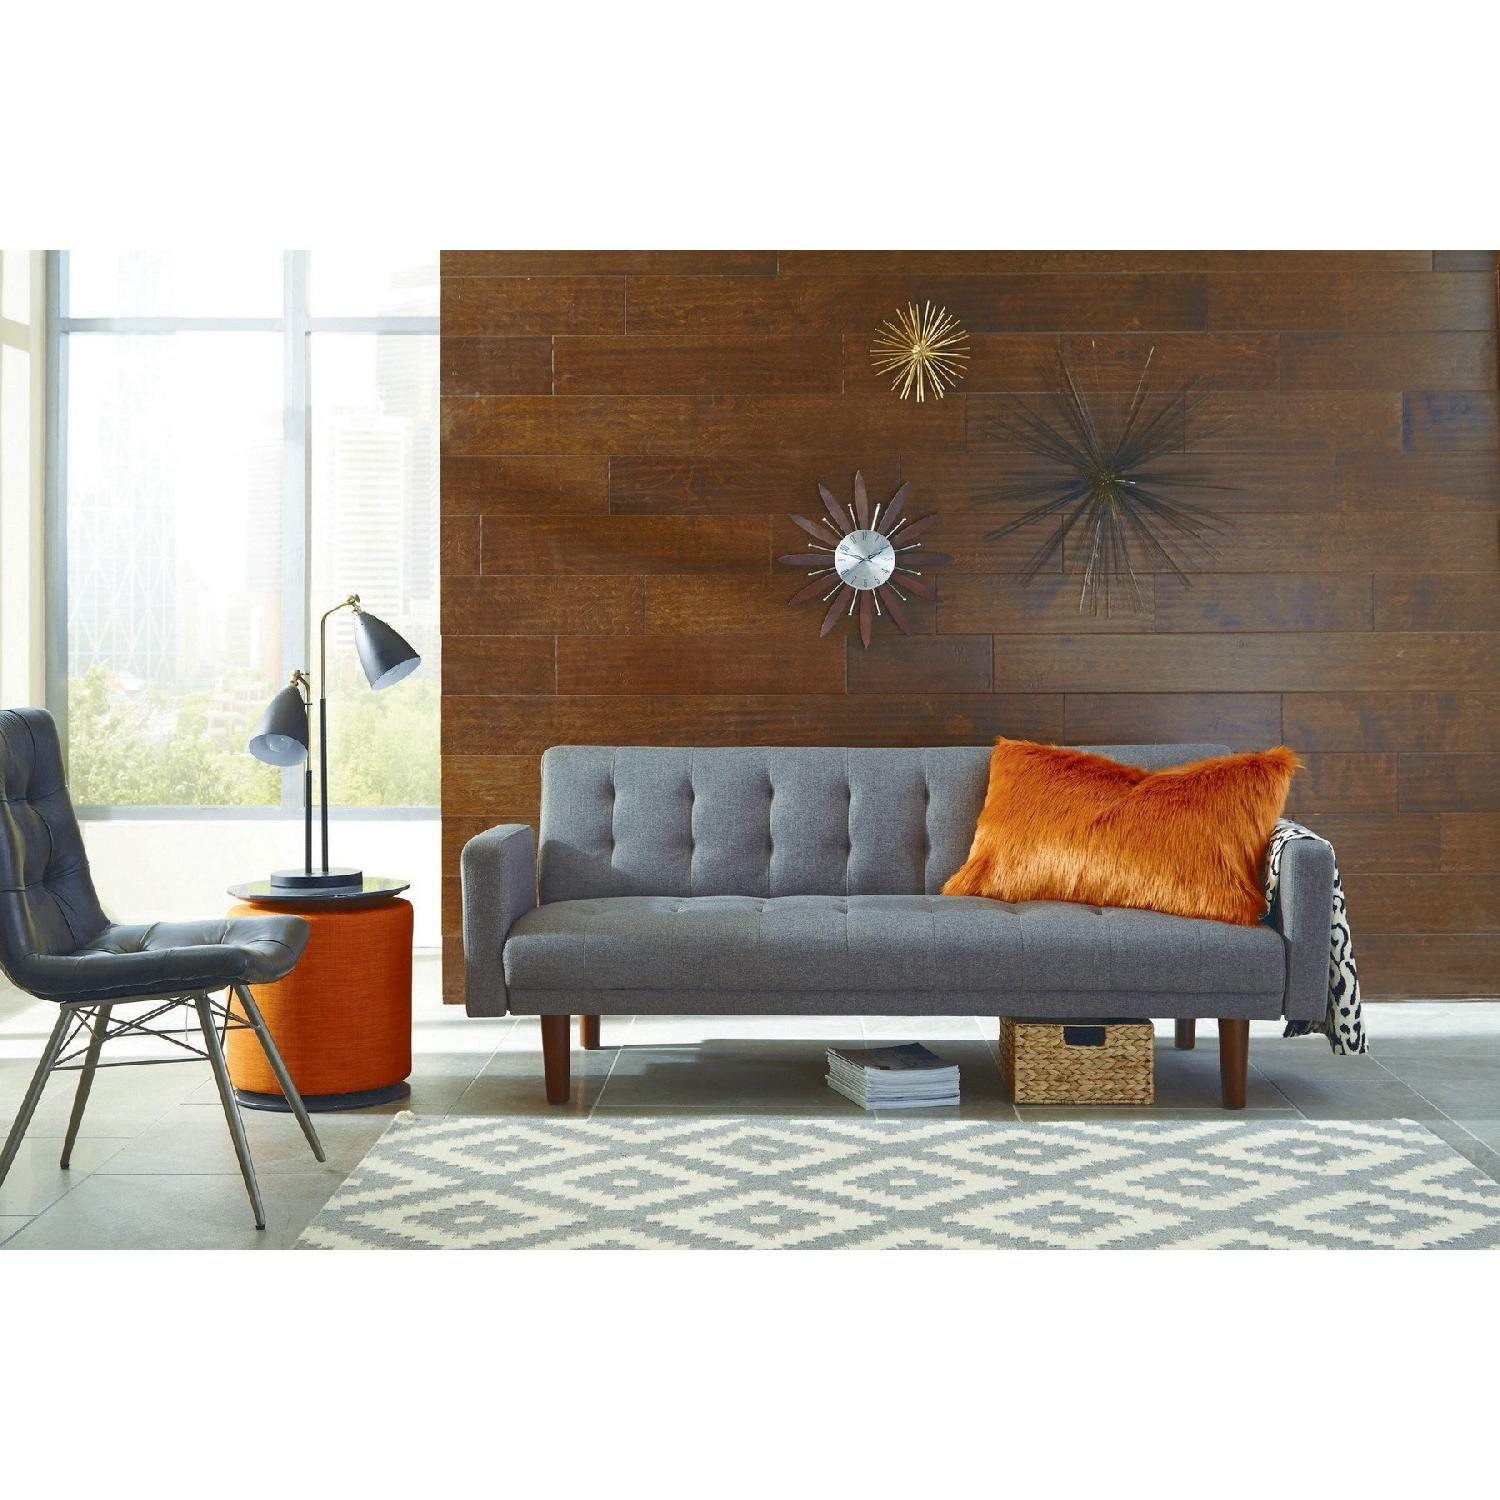 Tufted Grey Sleeper Sofa-2